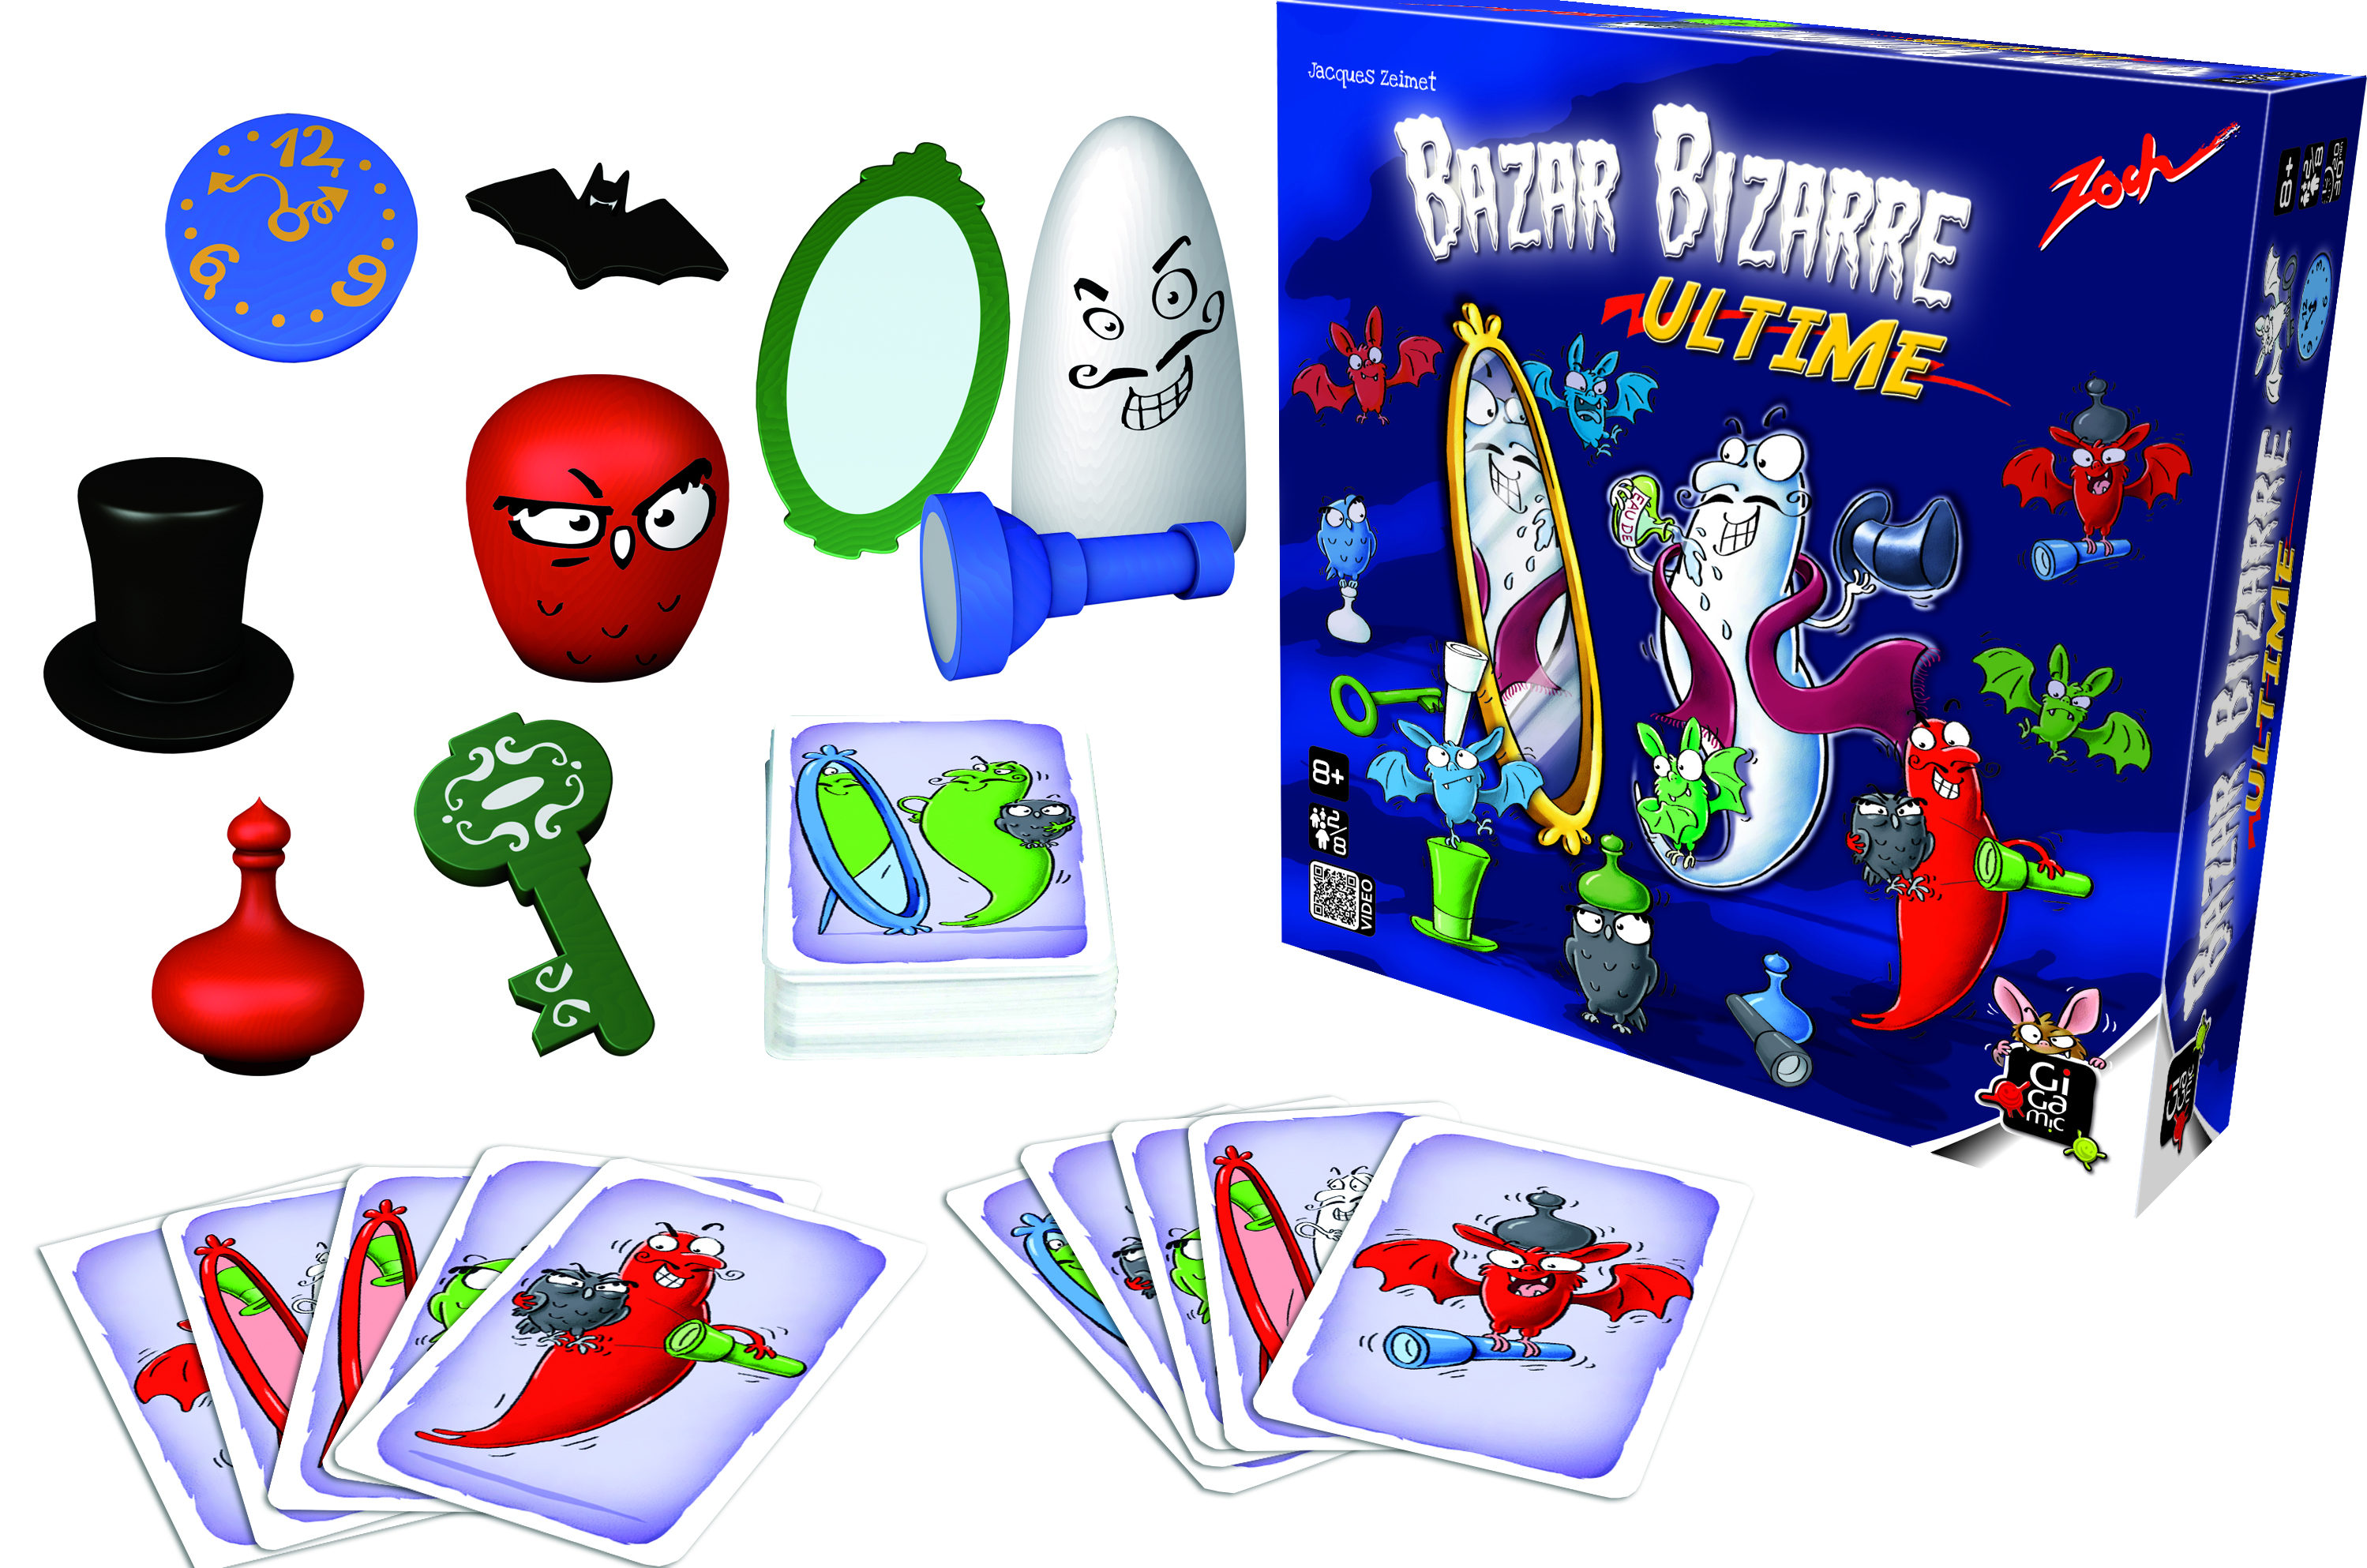 gigamic_zobbu_bazar-bizarre-ultime_box-game_hd